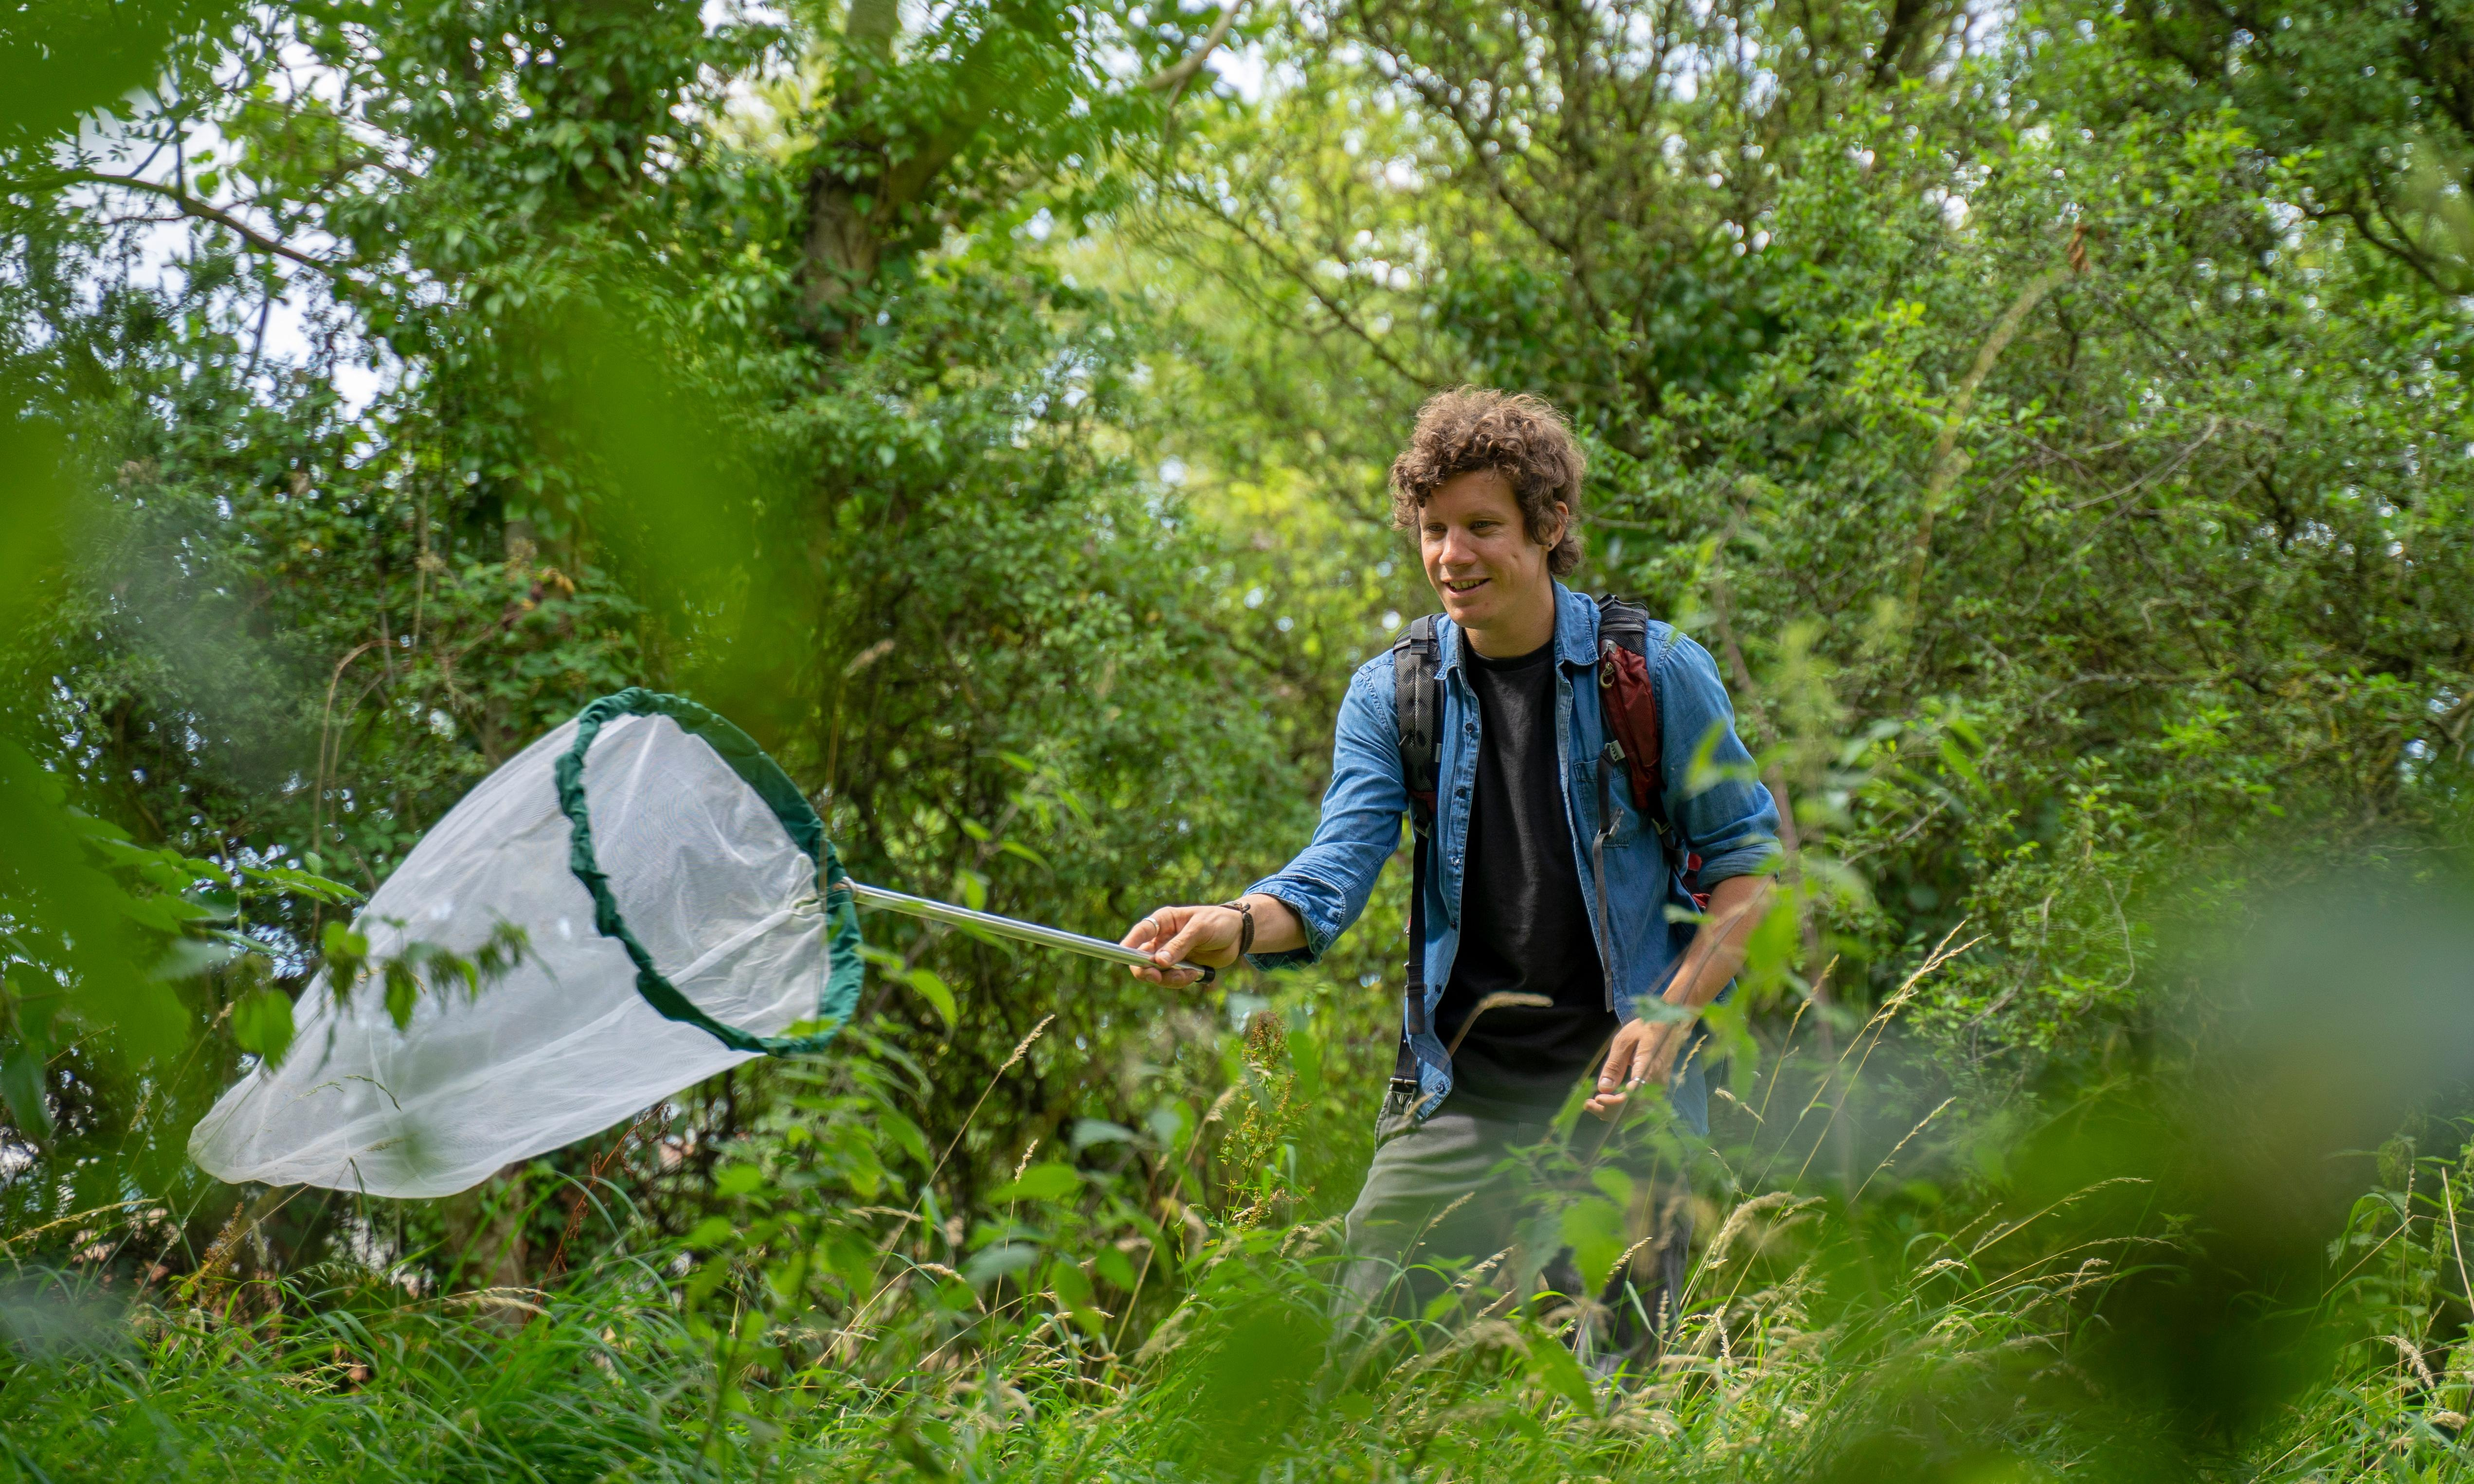 Good nature: citizen science trips and holidays in the UK